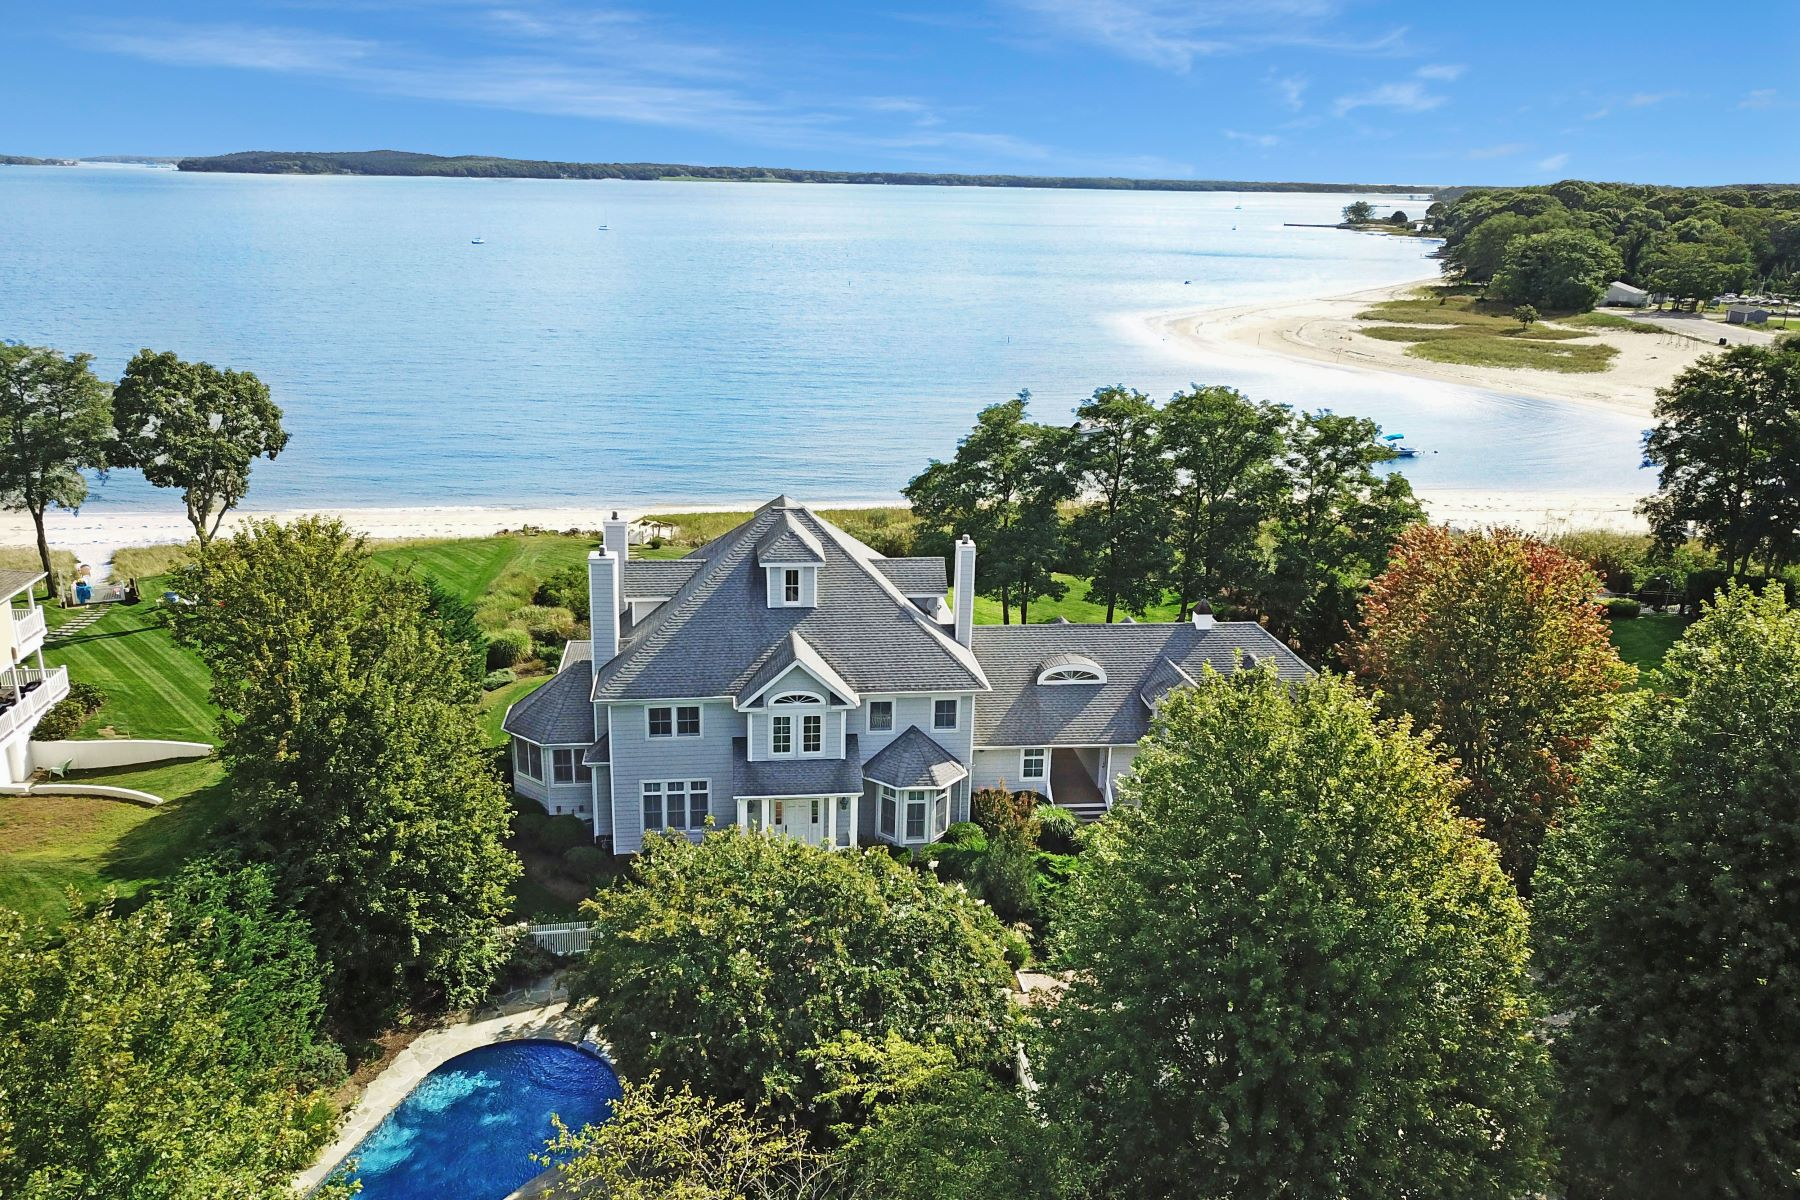 Single Family Home for Active at 1325 Kimberly Ln , Southold, NY 11971 1325 Kimberly Ln Southold, New York 11971 United States